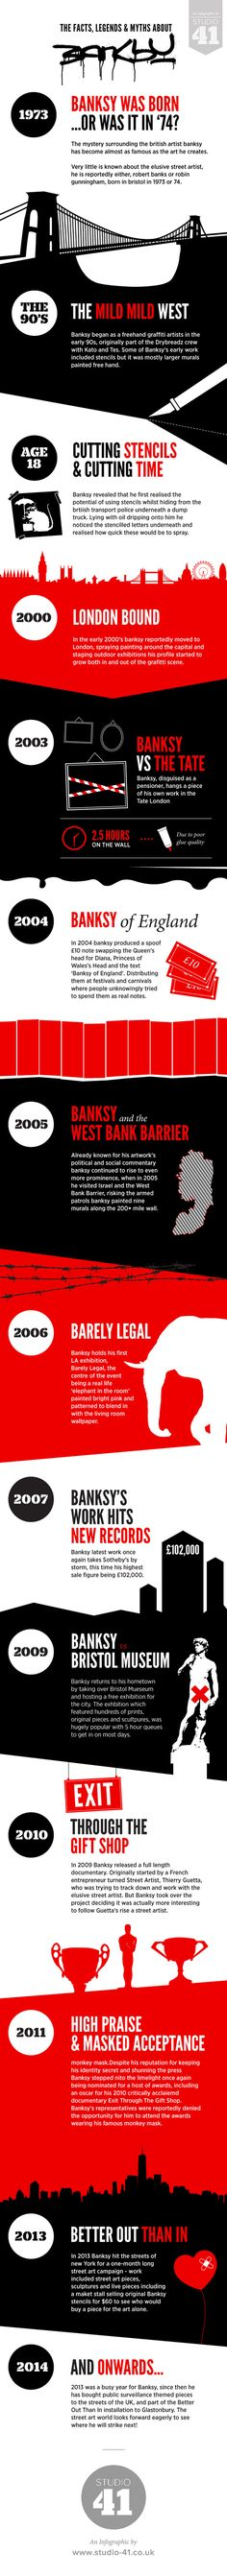 The Facts, Legends and Myths About Banksy   #infographic #Banksy #StreetArt